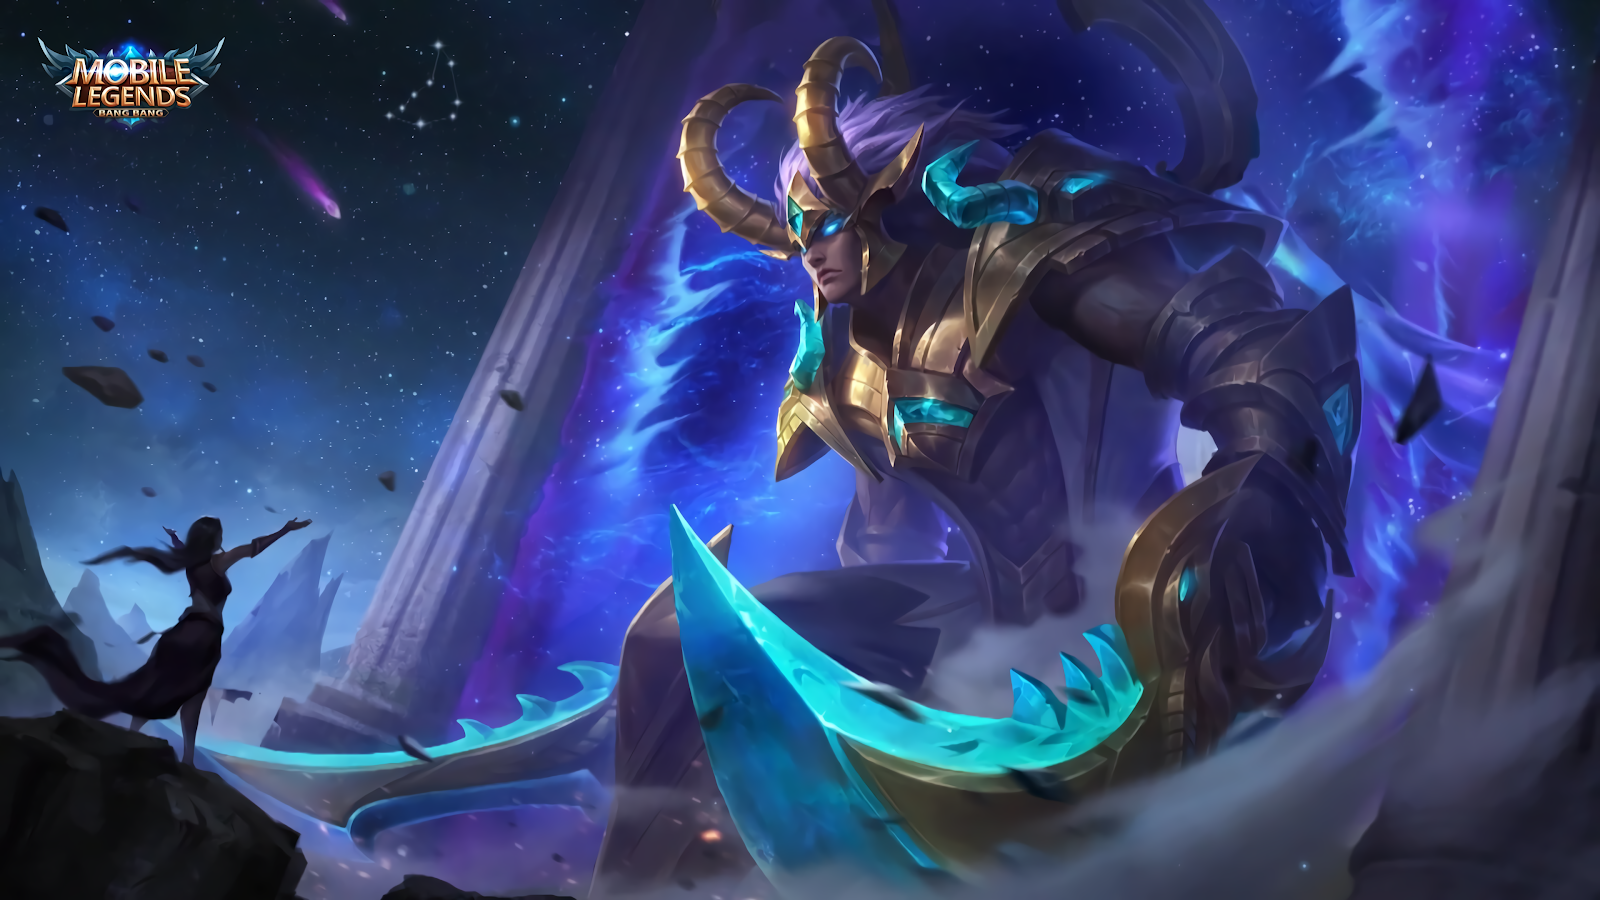 Mobile Legends Bang Bang Wallpaper Mobile Legends Zodiac Skin